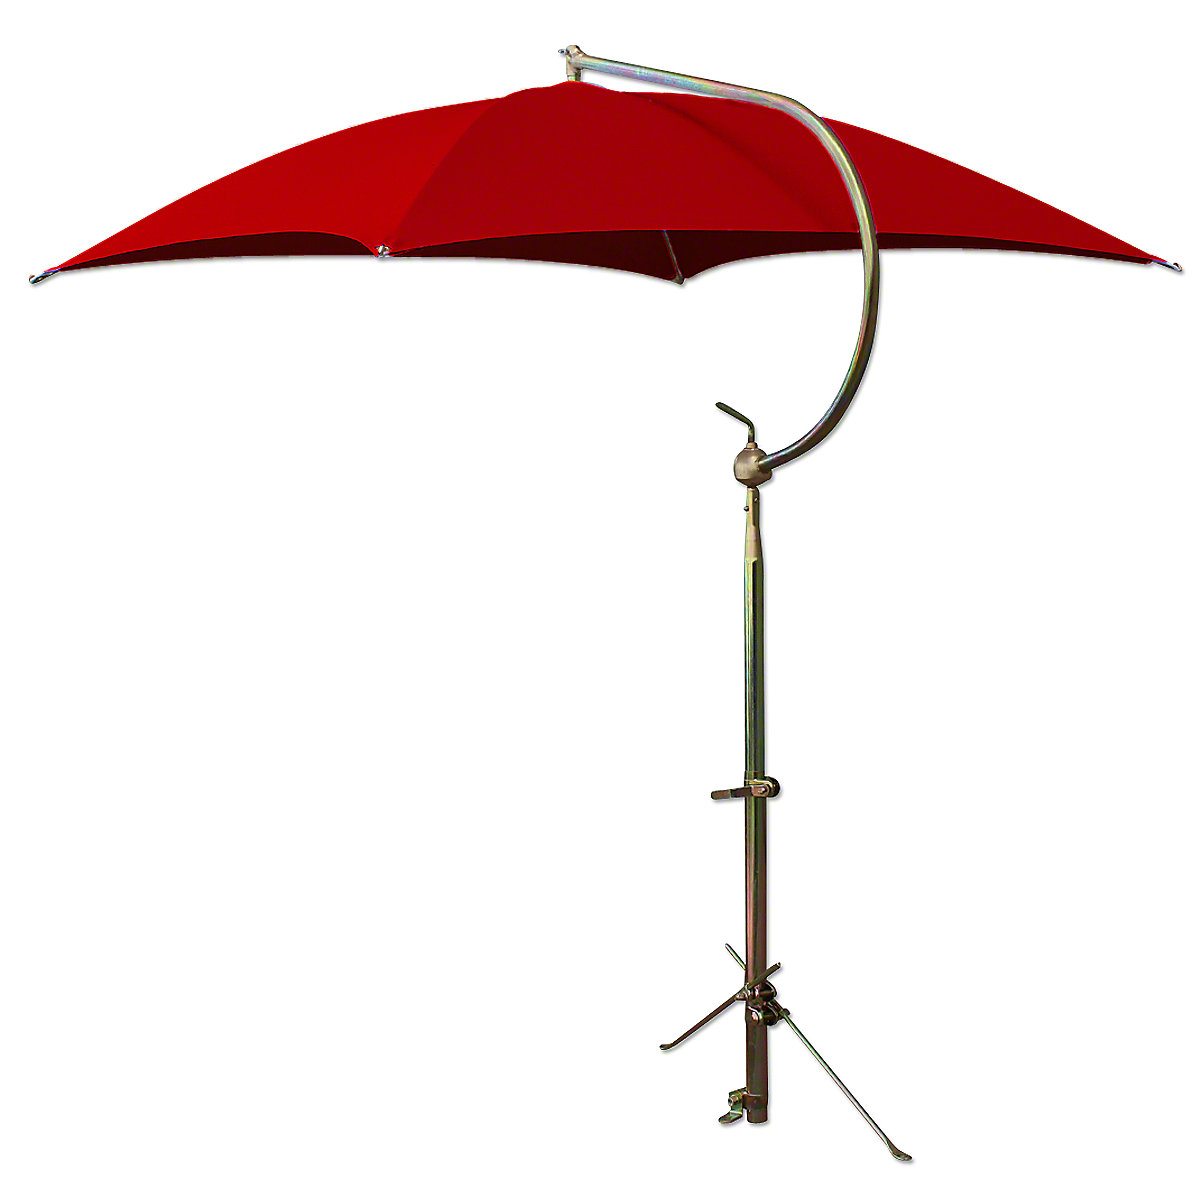 ABC2357 Deluxe Red Umbrella with Brackets